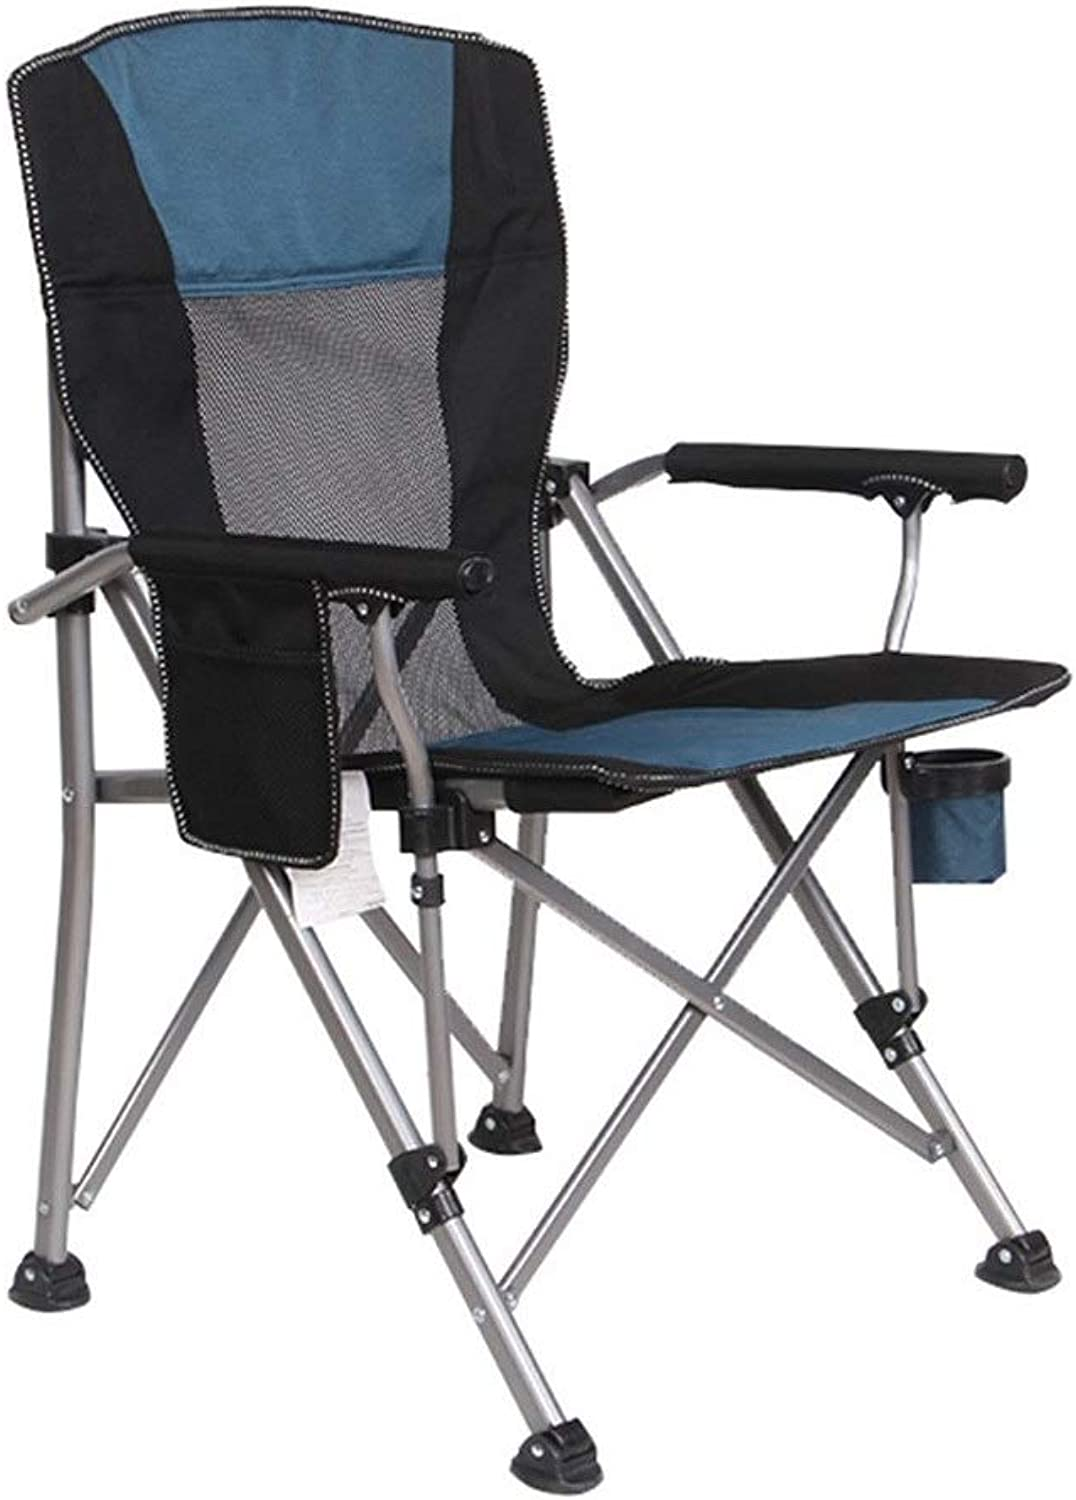 Outdoor Folding Chair Portable Beach Chair Bearing 300 Kg Stool Director Chair Fishing Chair Leisure Chair Table, Good Material, Practical and Durable